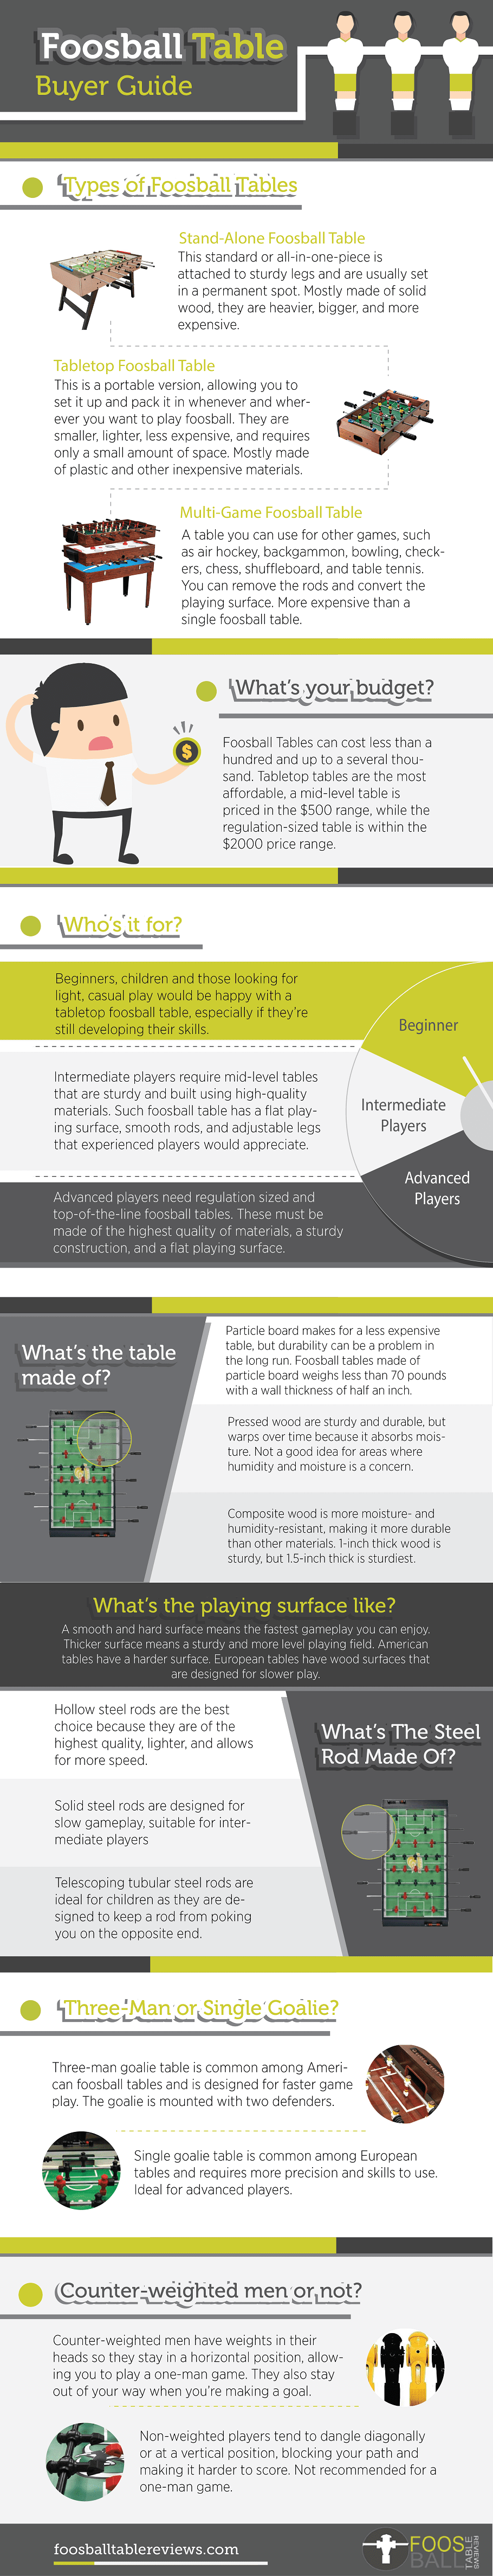 foosball table buyer guid infographic